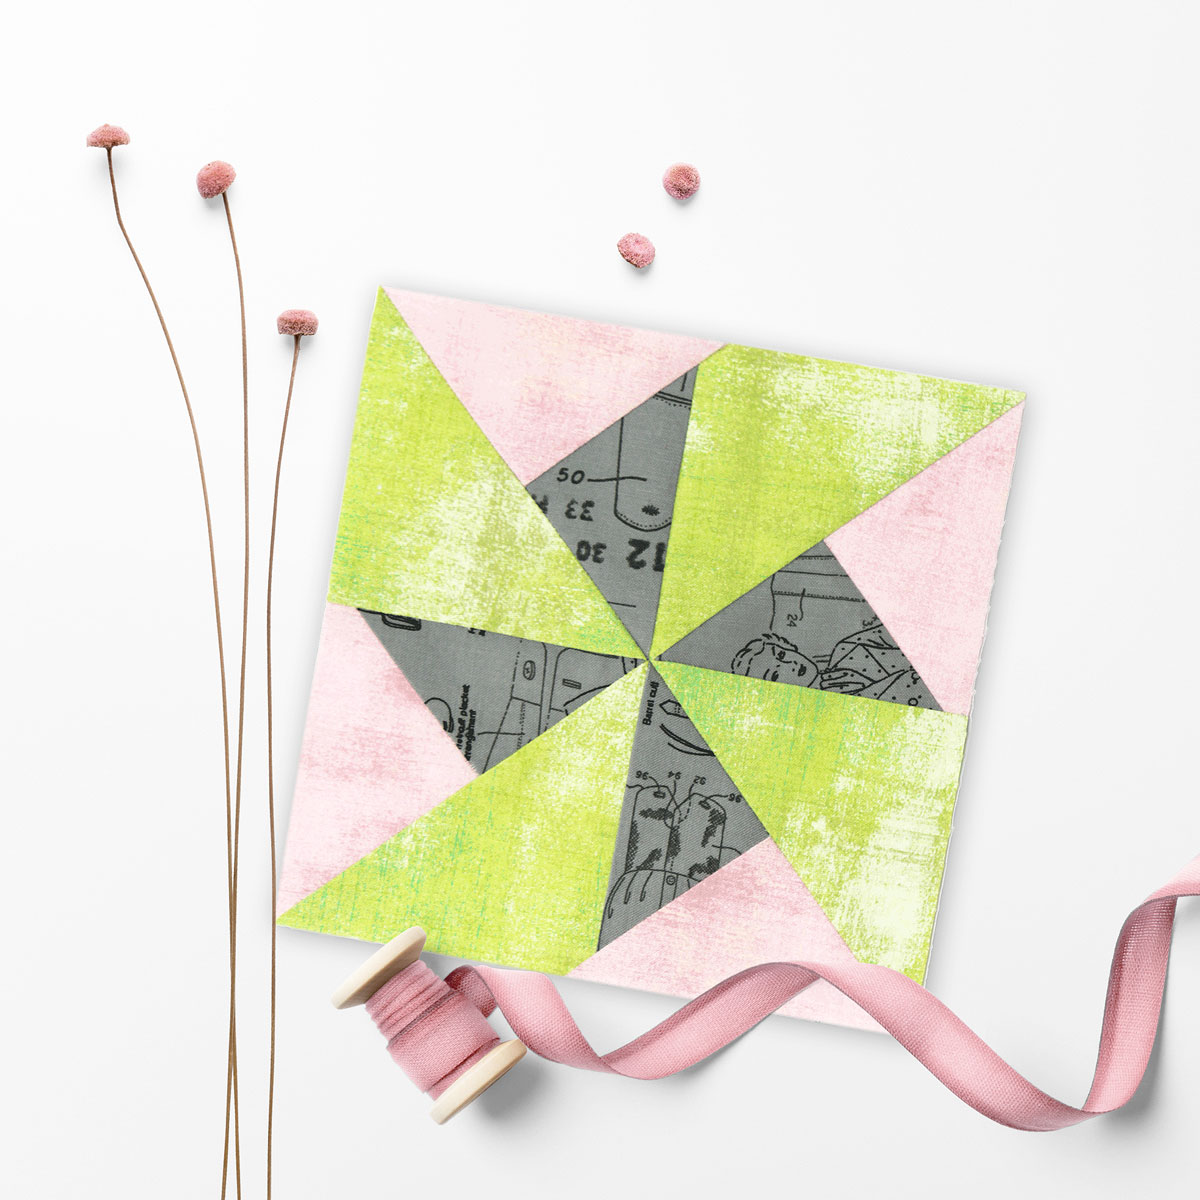 Free quilt along Blockheads 2018, Block 7: Spin Cycle Fabrics used in the block are from Moda,Basic Grey GRUNGE and Zen Chic MORE PAPER